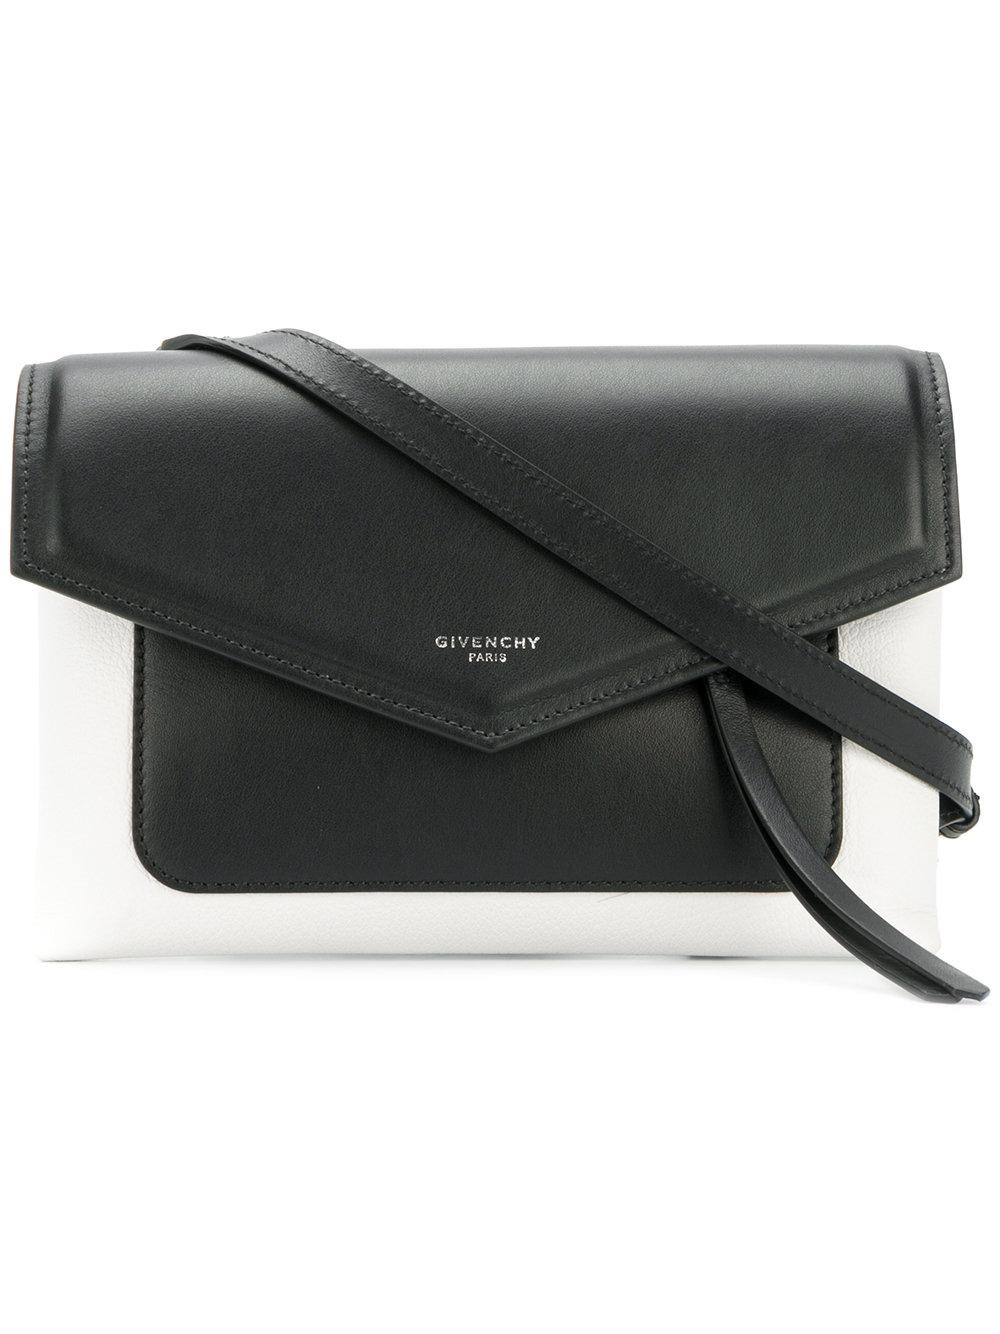 08fa2284957a Lyst - Givenchy Duetto Crossbody Bag in Black